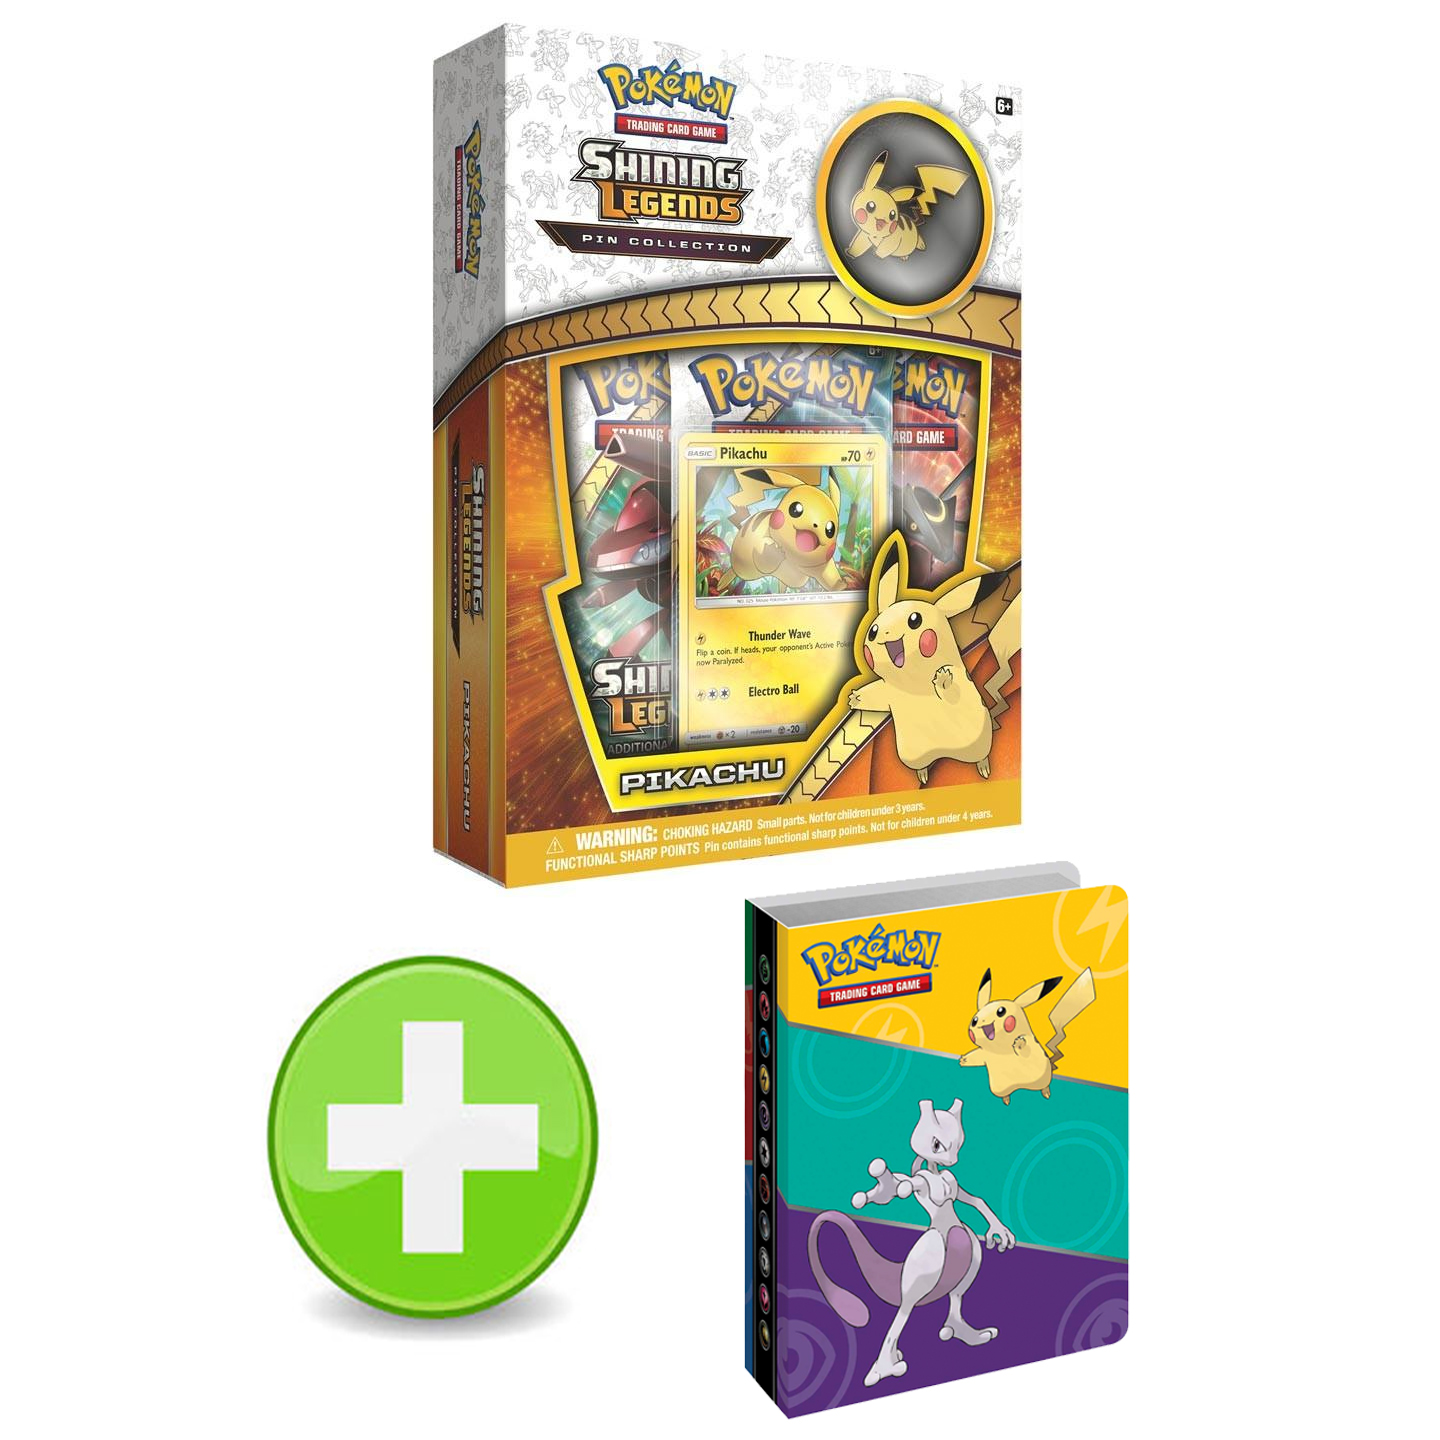 Pokemon Shining Legends Pikachu Pin Collection With XY